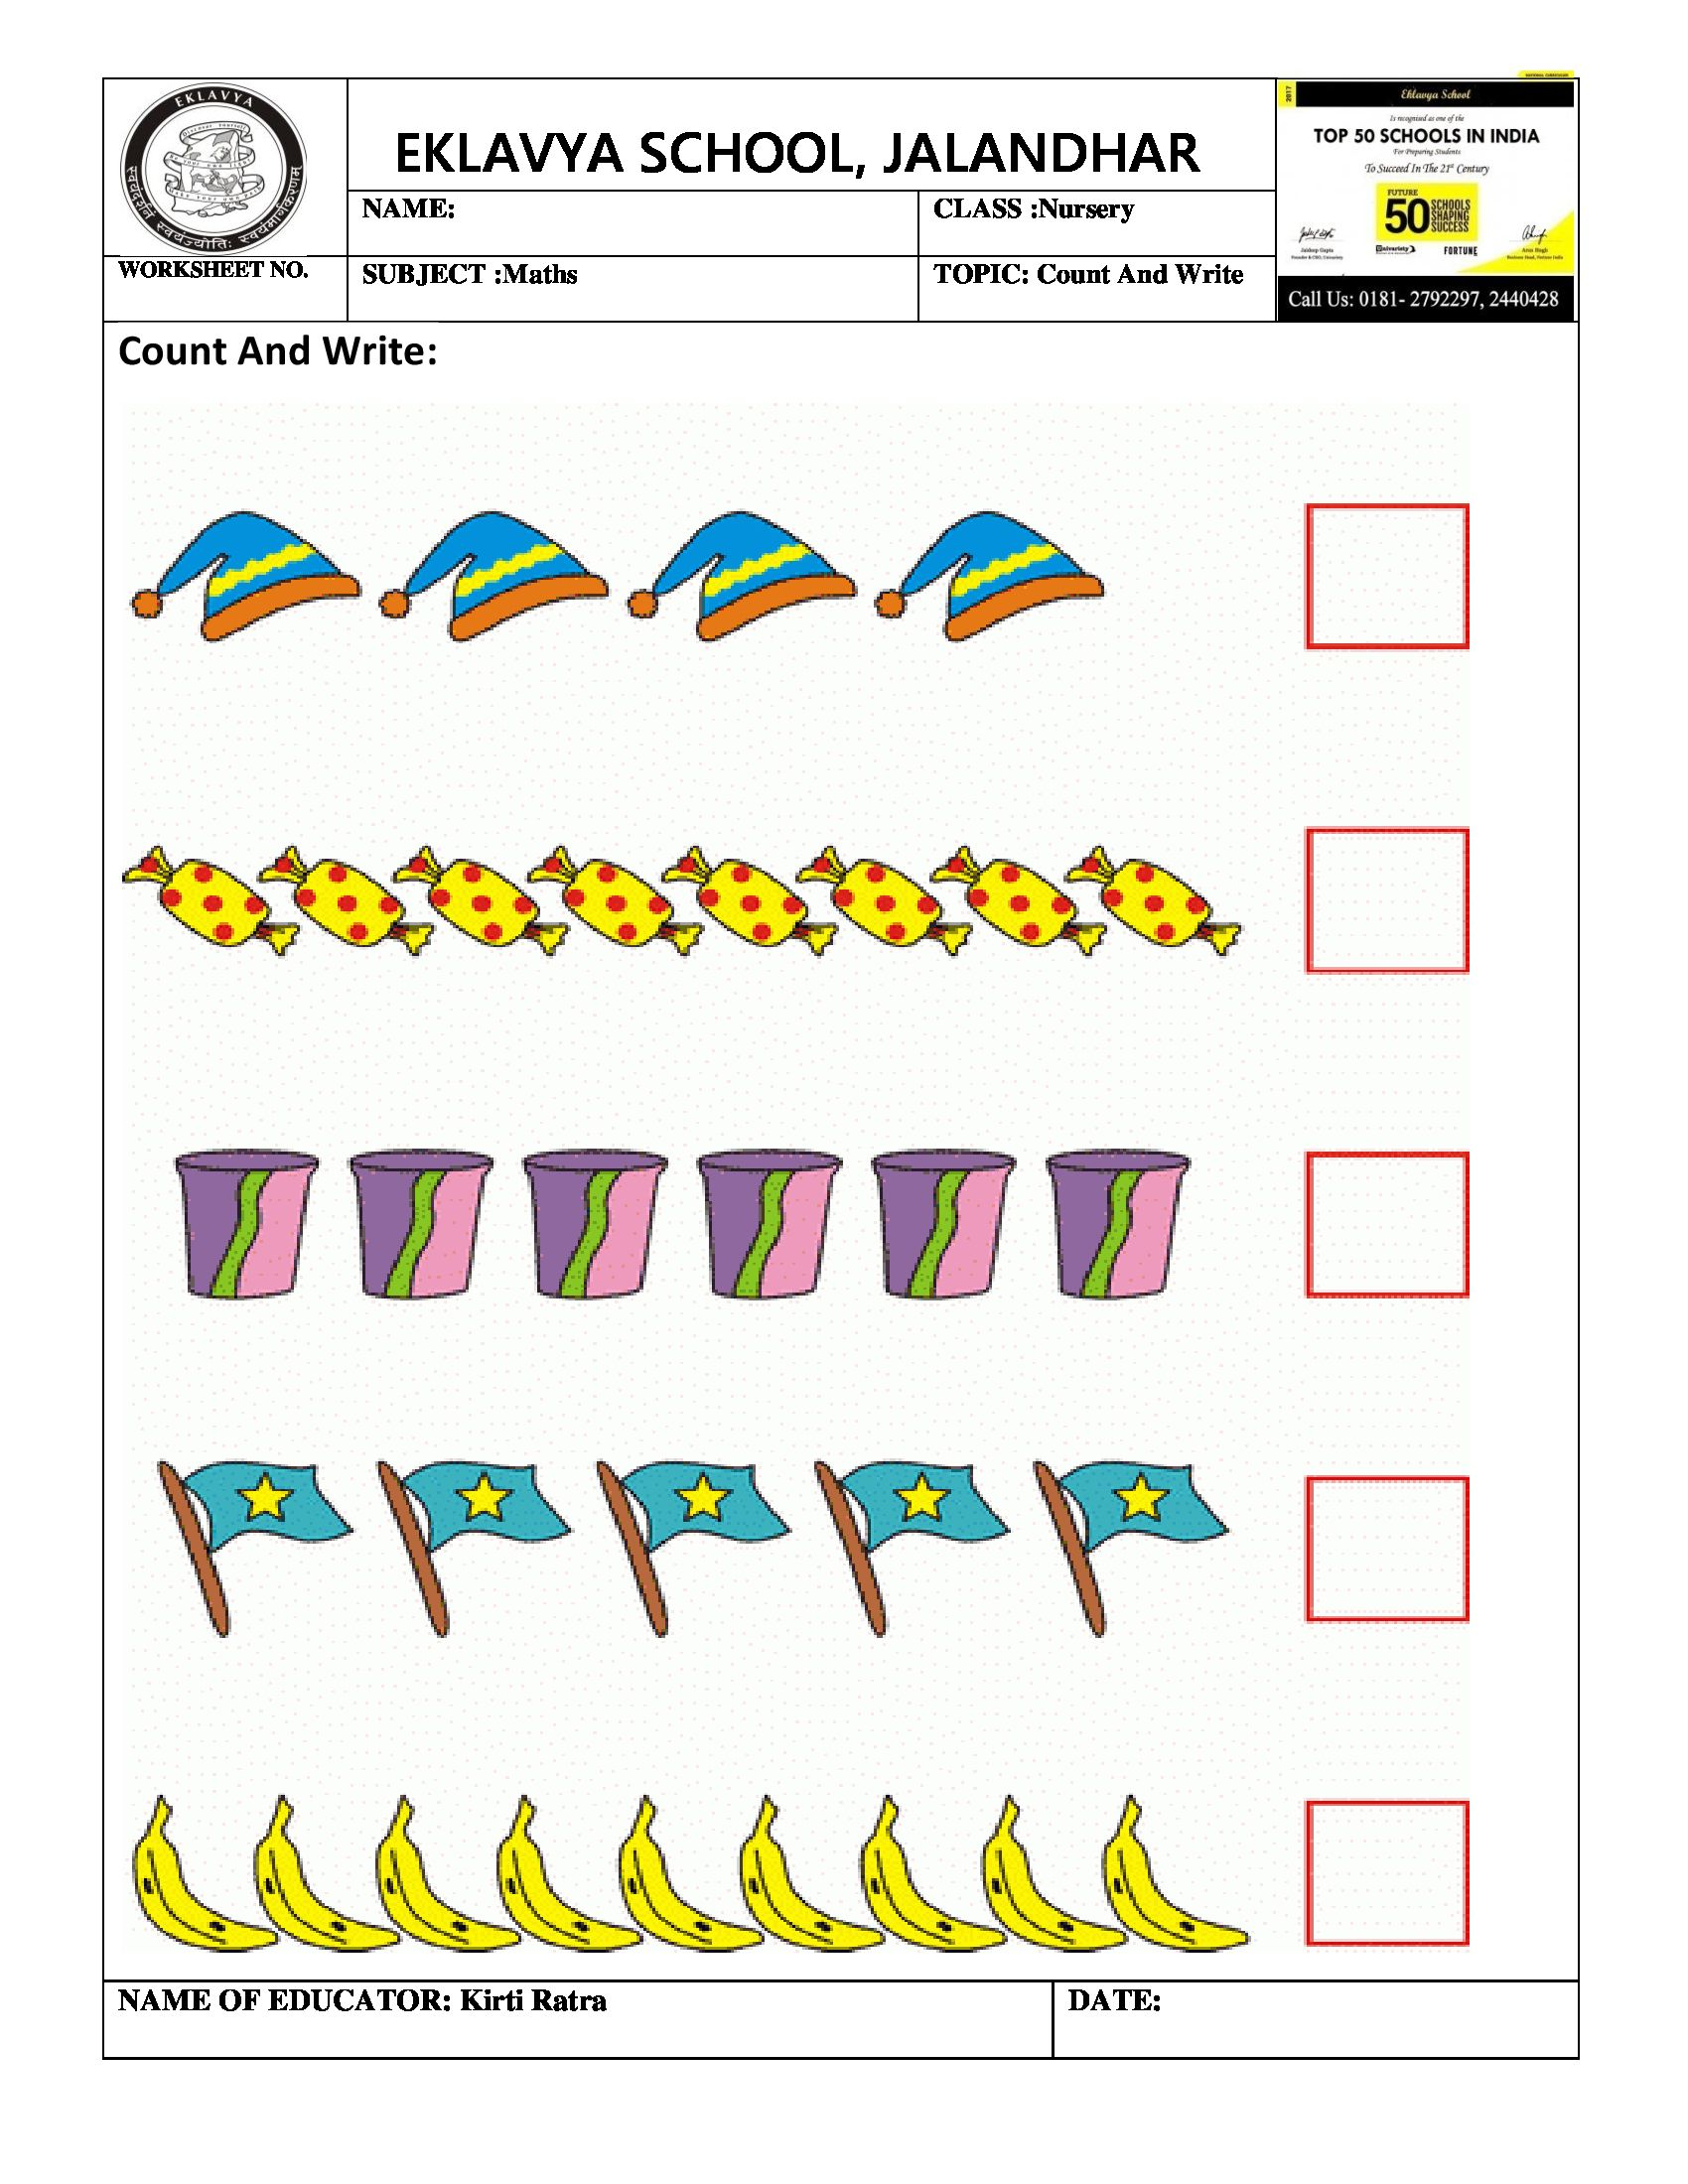 Worksheet Count And Write India School Worksheets Writing Count and write worksheets